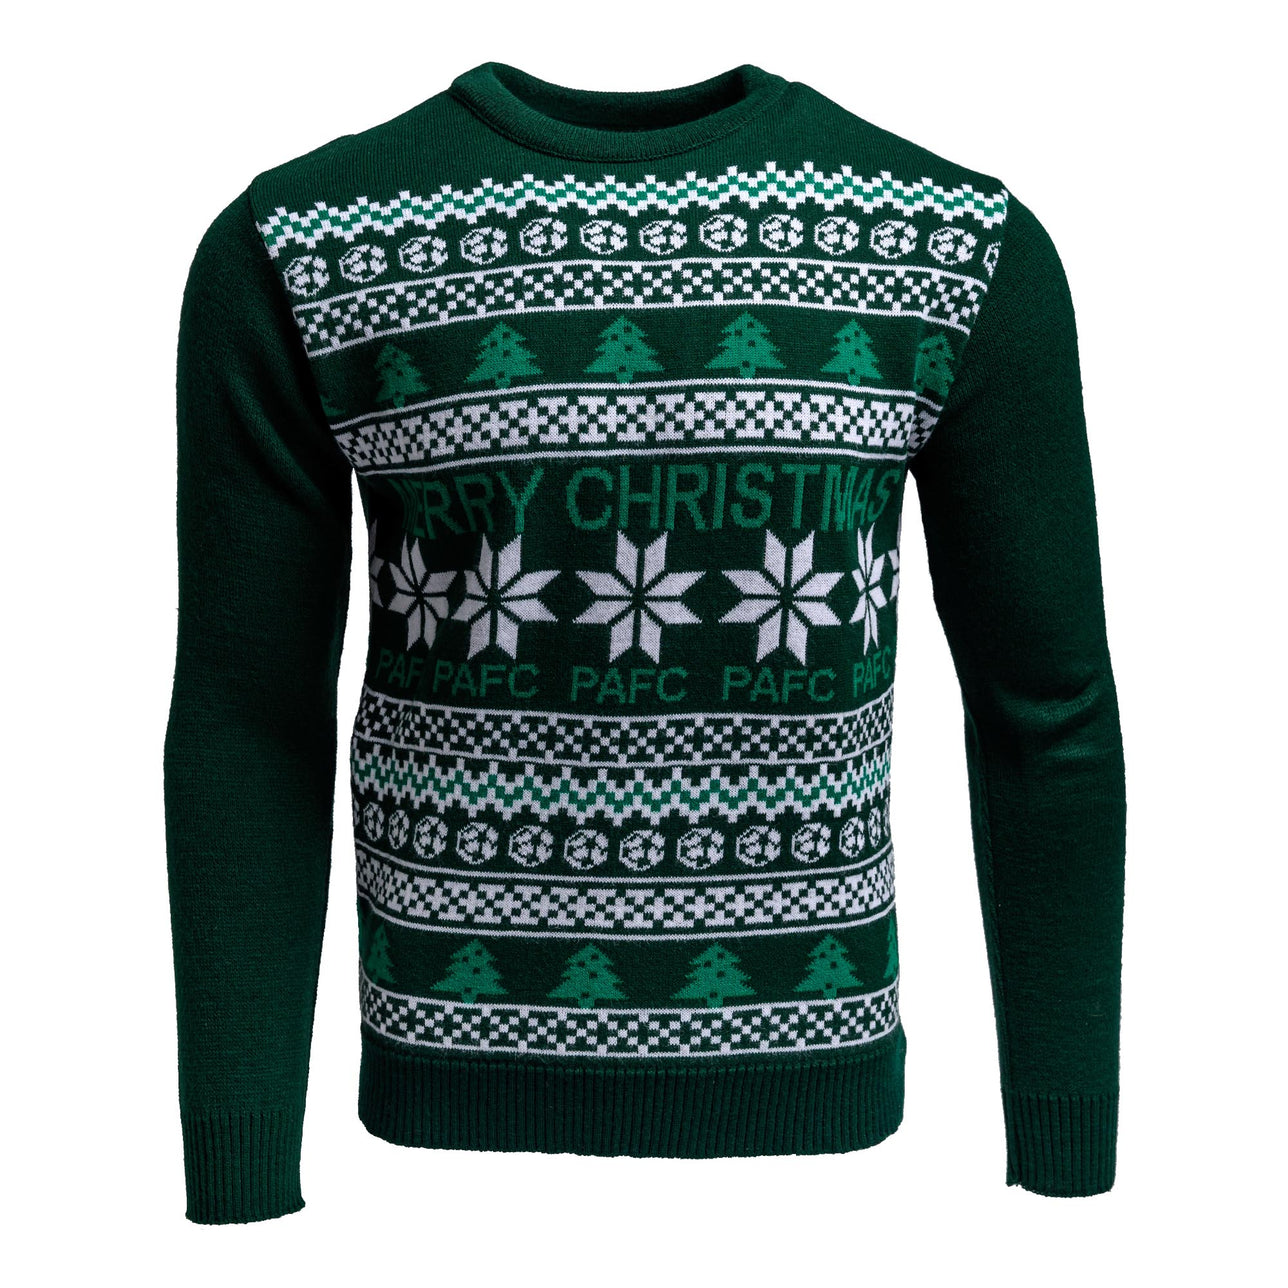 Blizzard Xmas Jumper